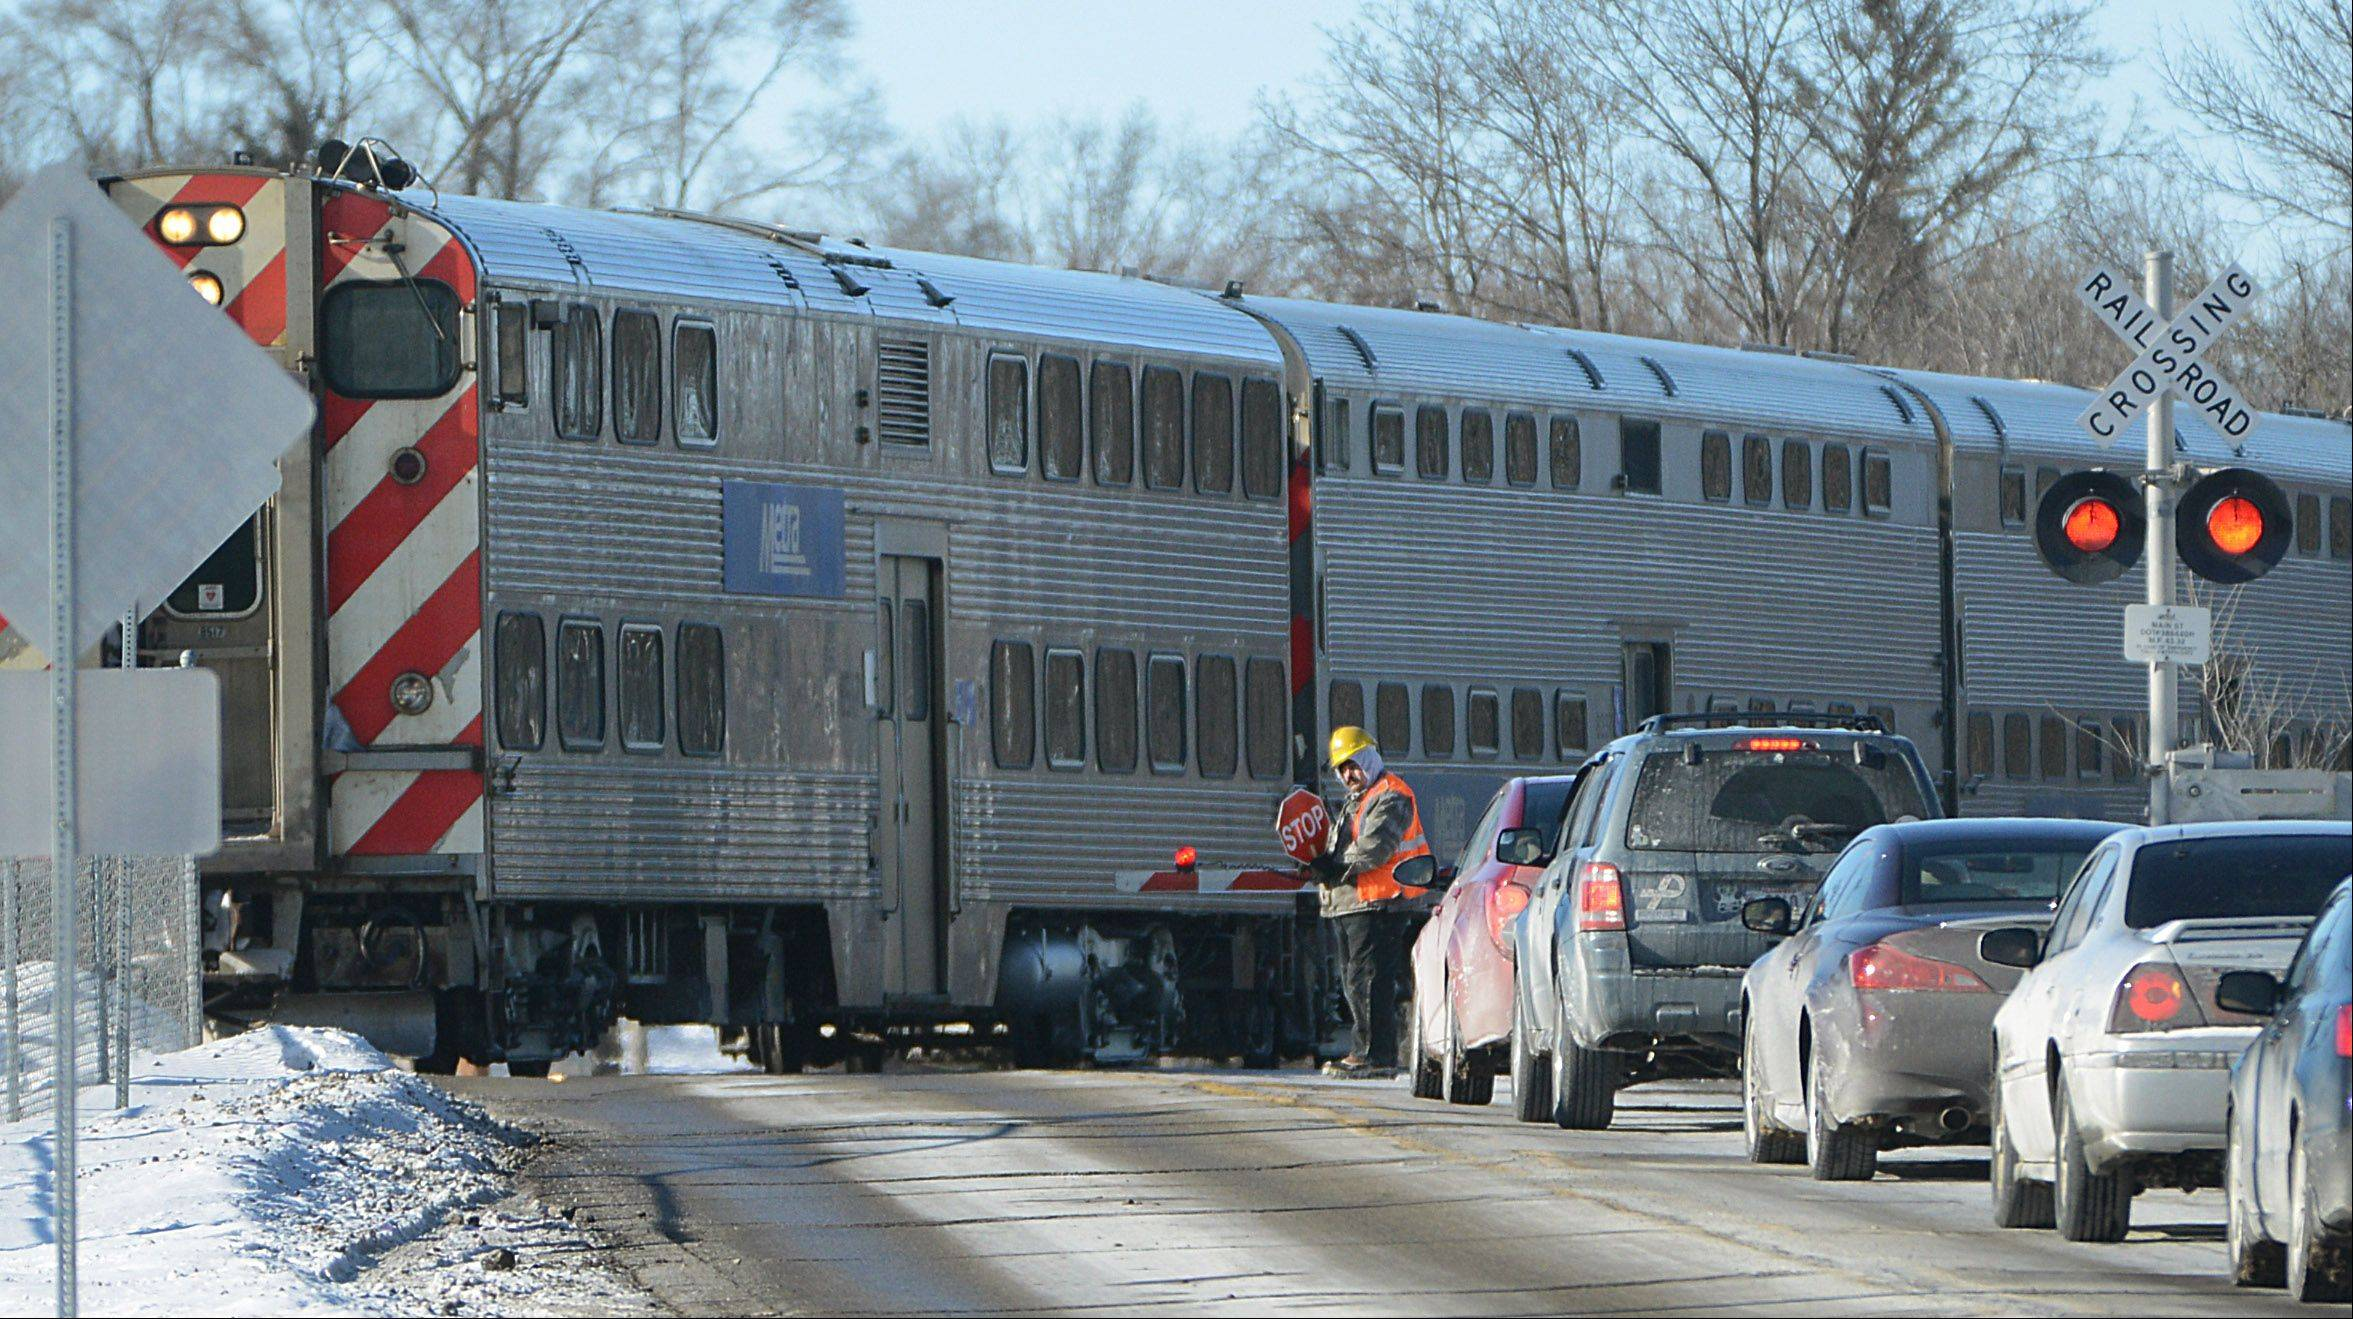 Police: Alcohol factor in fatal Round Lake Park train crash